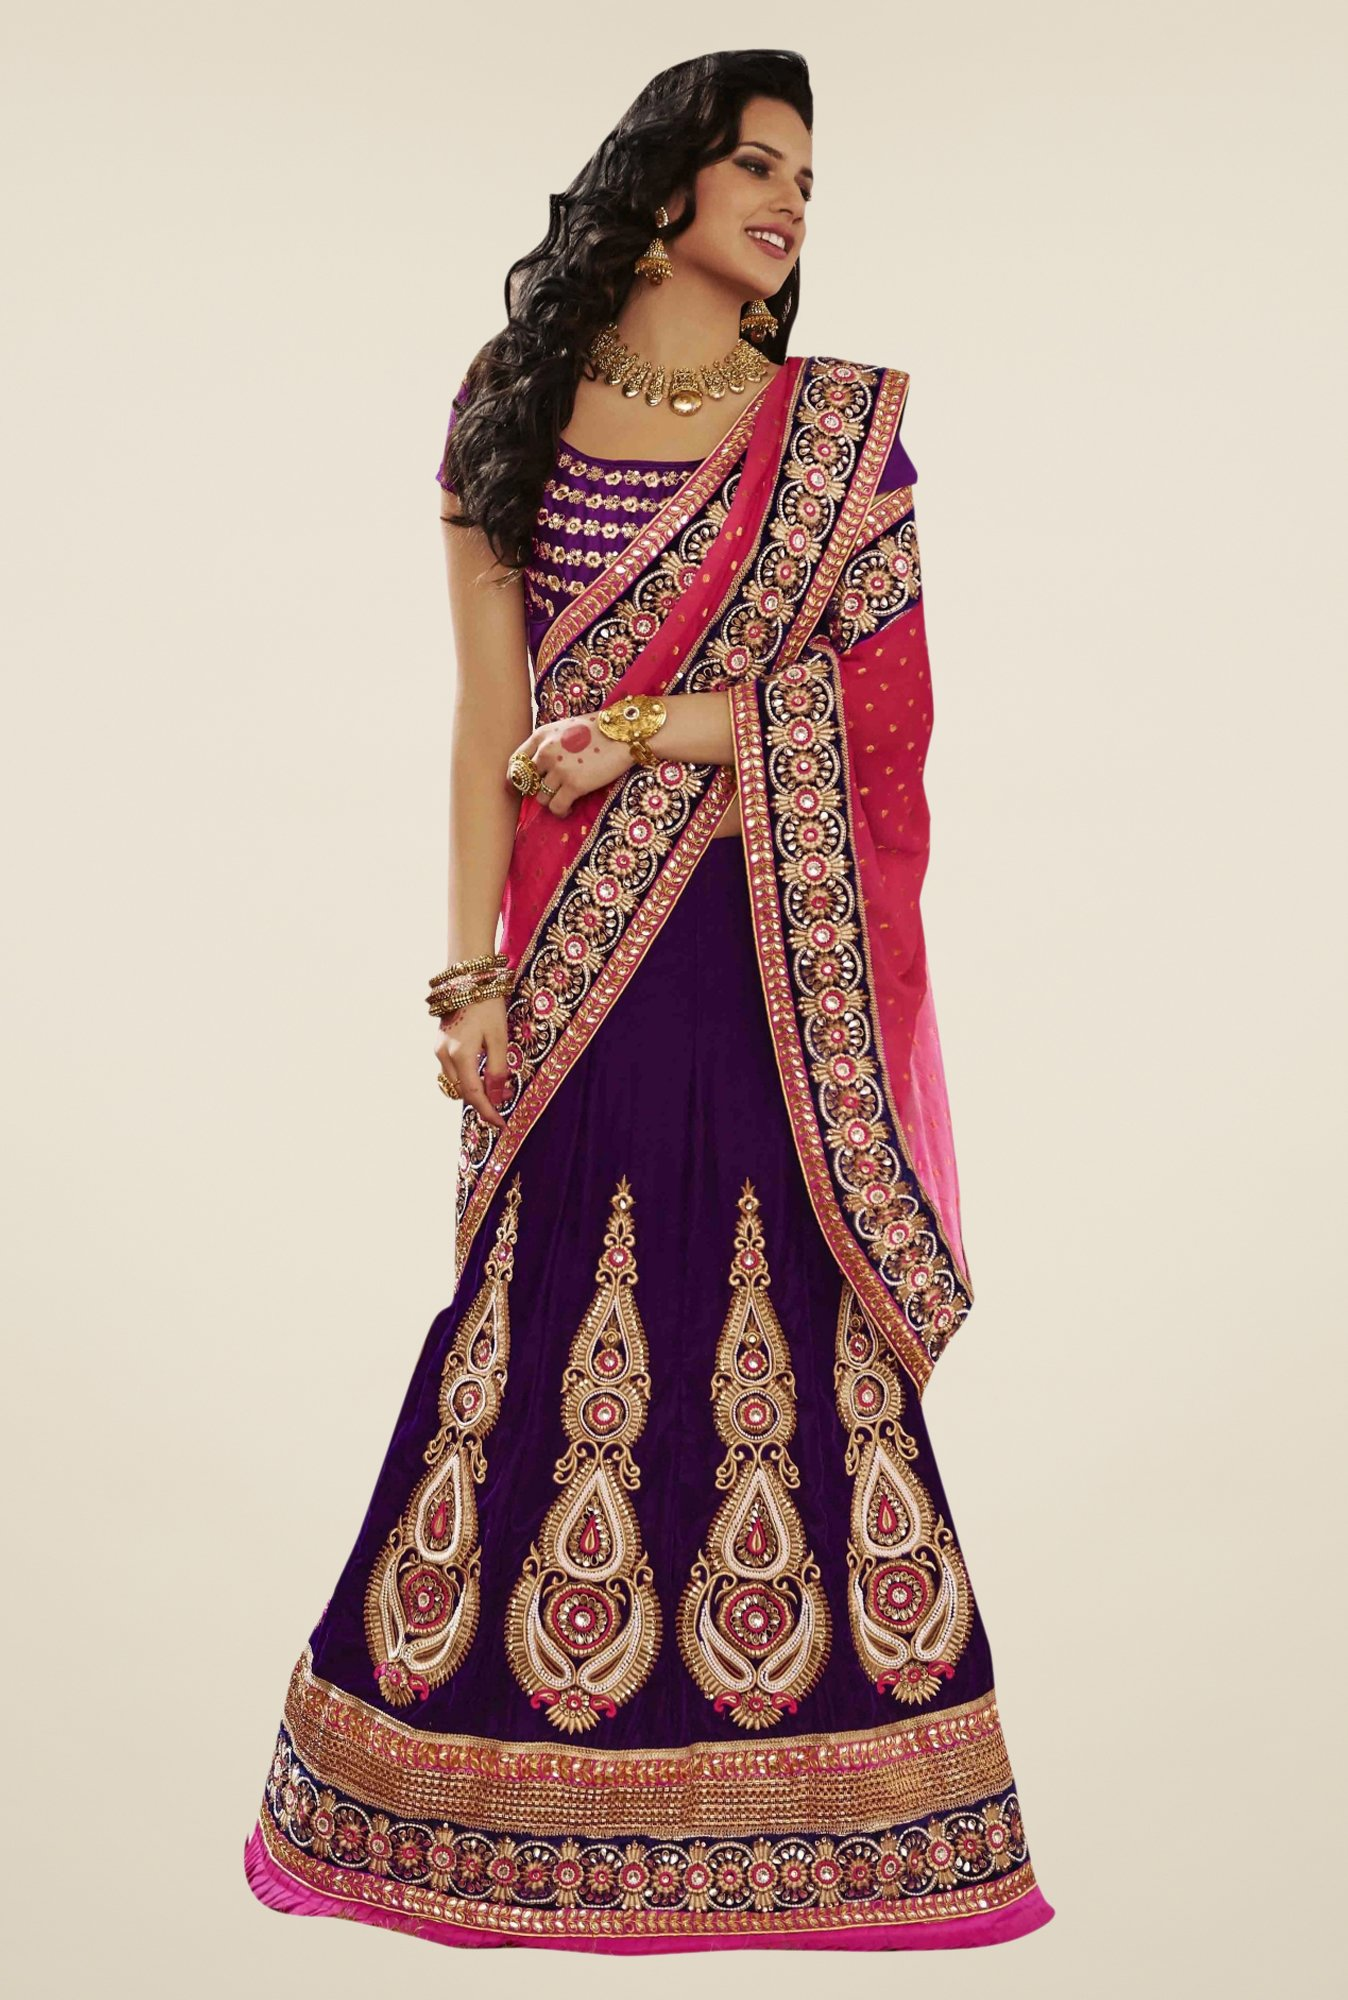 Triveni Purple & Pink Embroidered Velvet Lehenga Saree